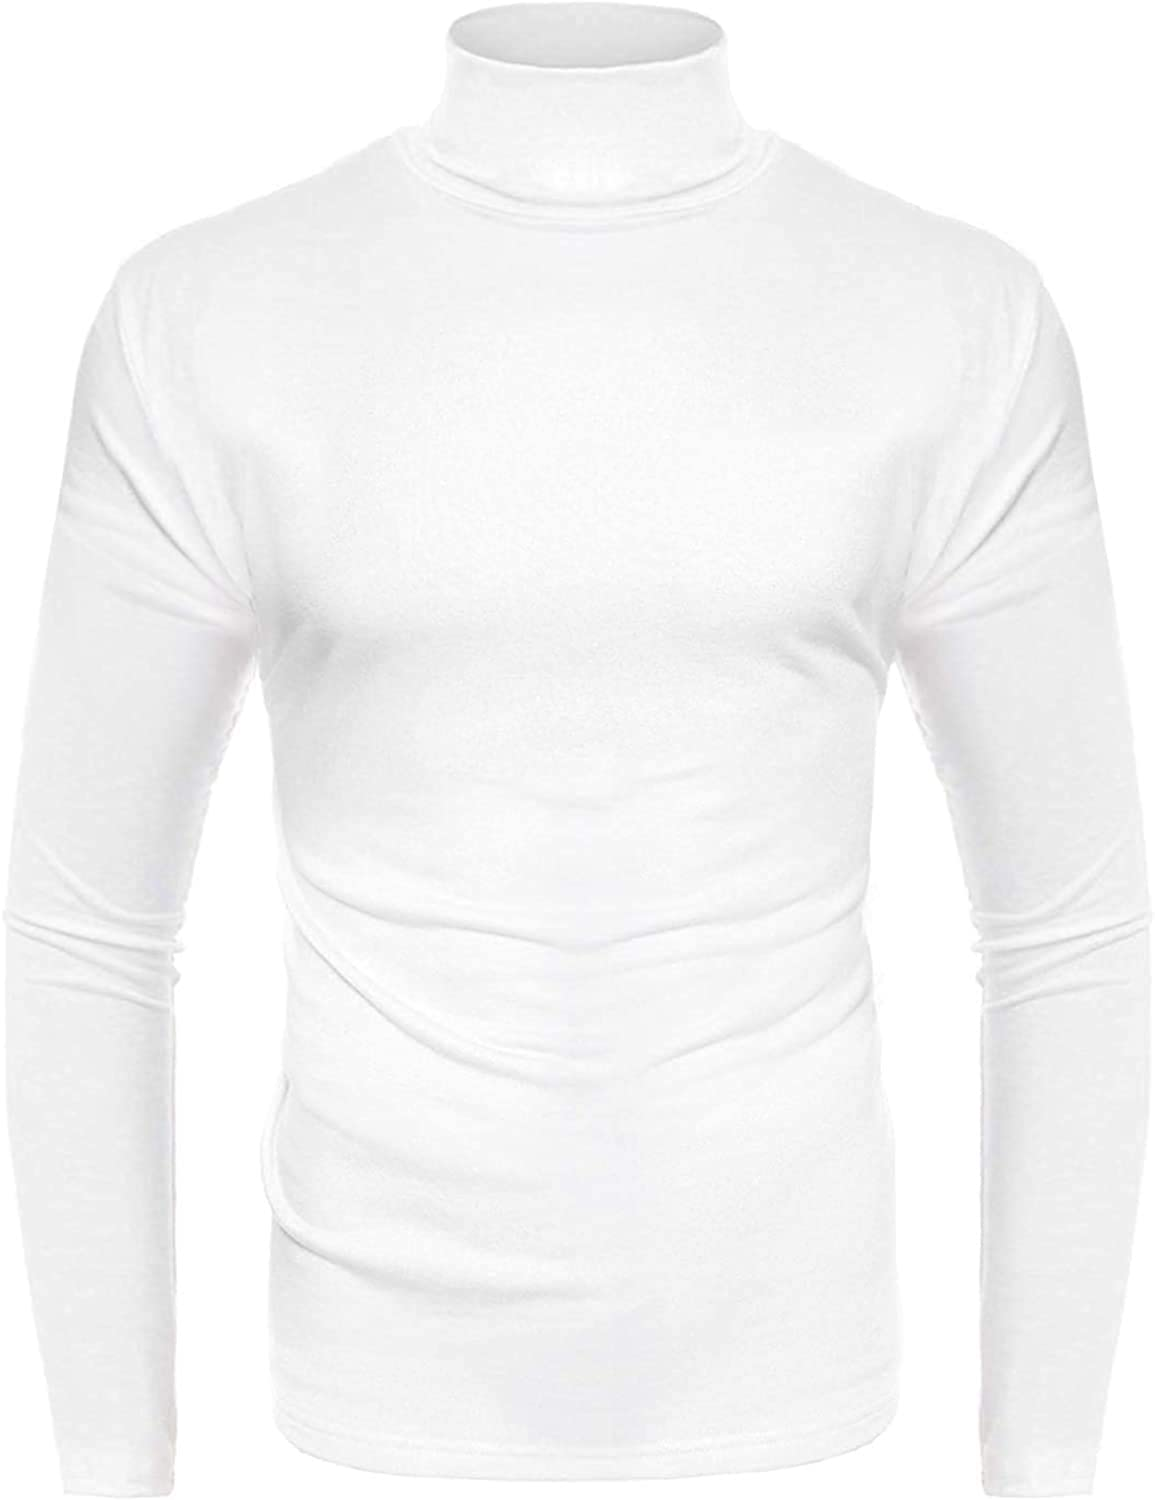 UUANG Challenge the lowest price of Japan Men's Casual Slim Fit Thermal Turtleneck T Shirts Kn Max 73% OFF Basic